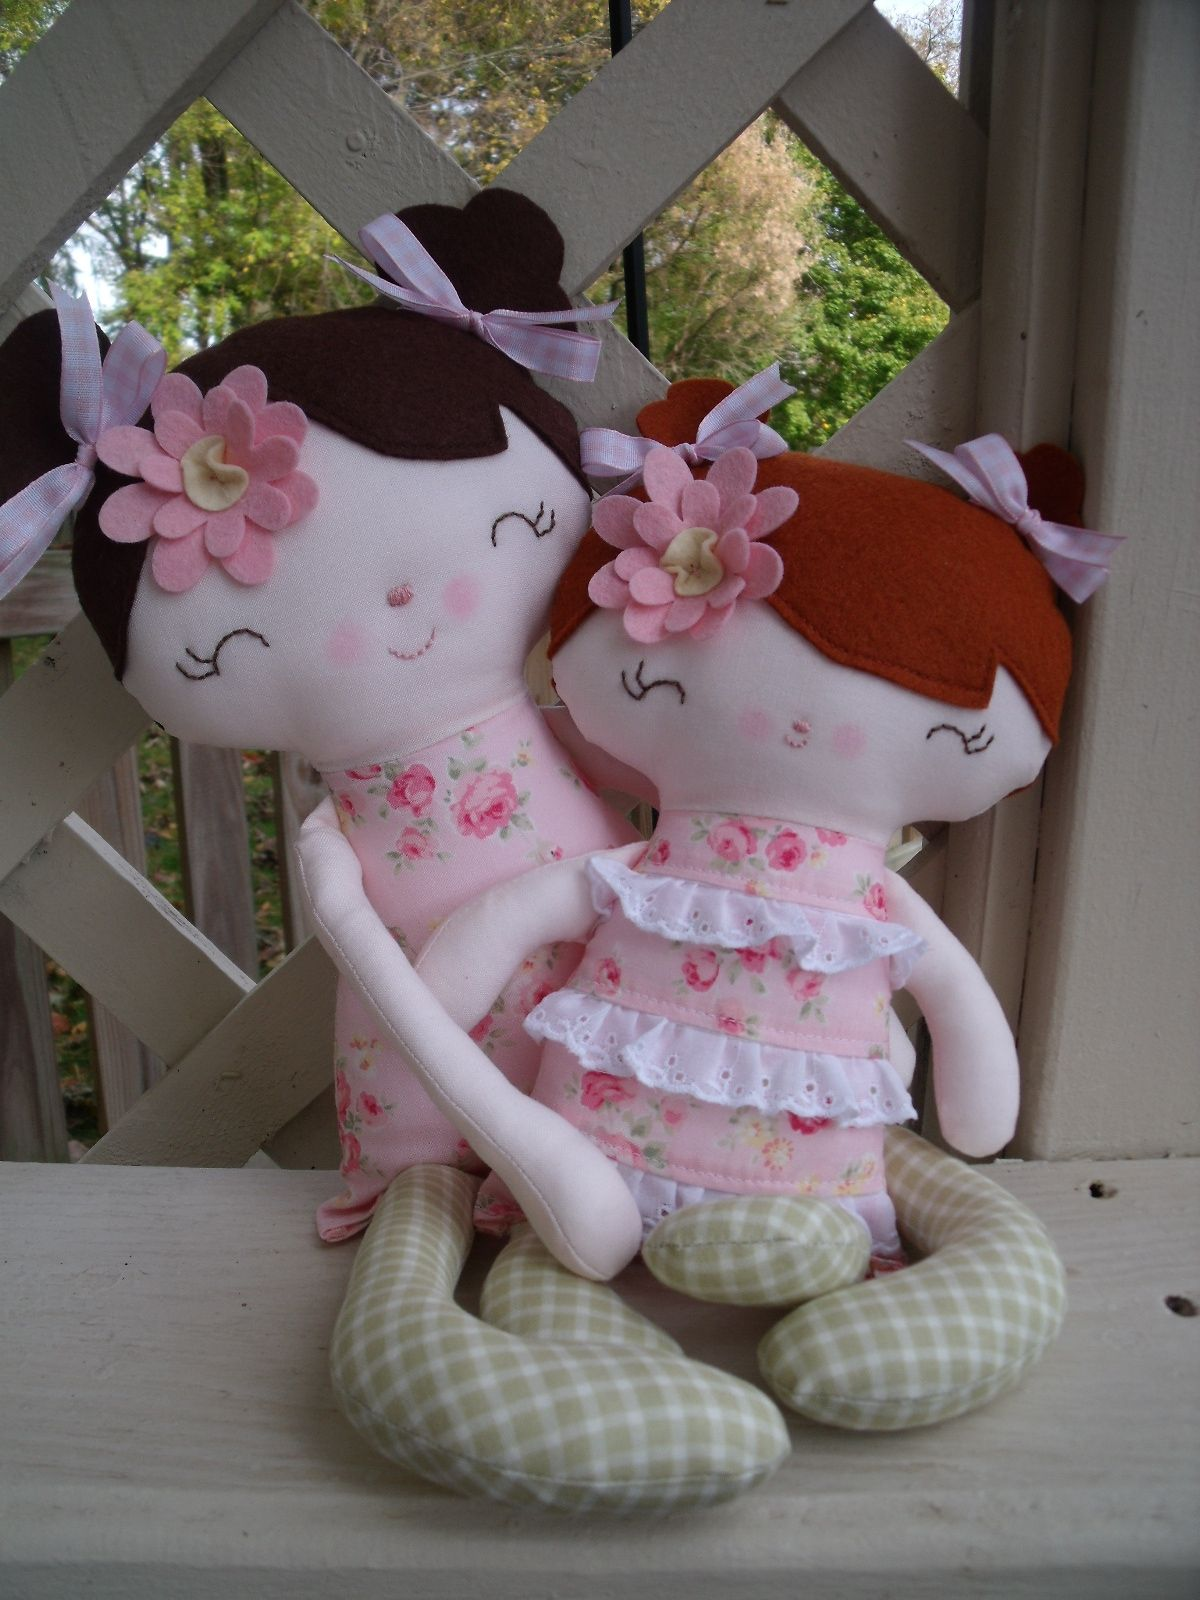 """Handmade rag dolls****A special """"wee one"""" for a new baby and a big girl doll for her big sister  www.facebook.com/dandelionwishesbymimi"""